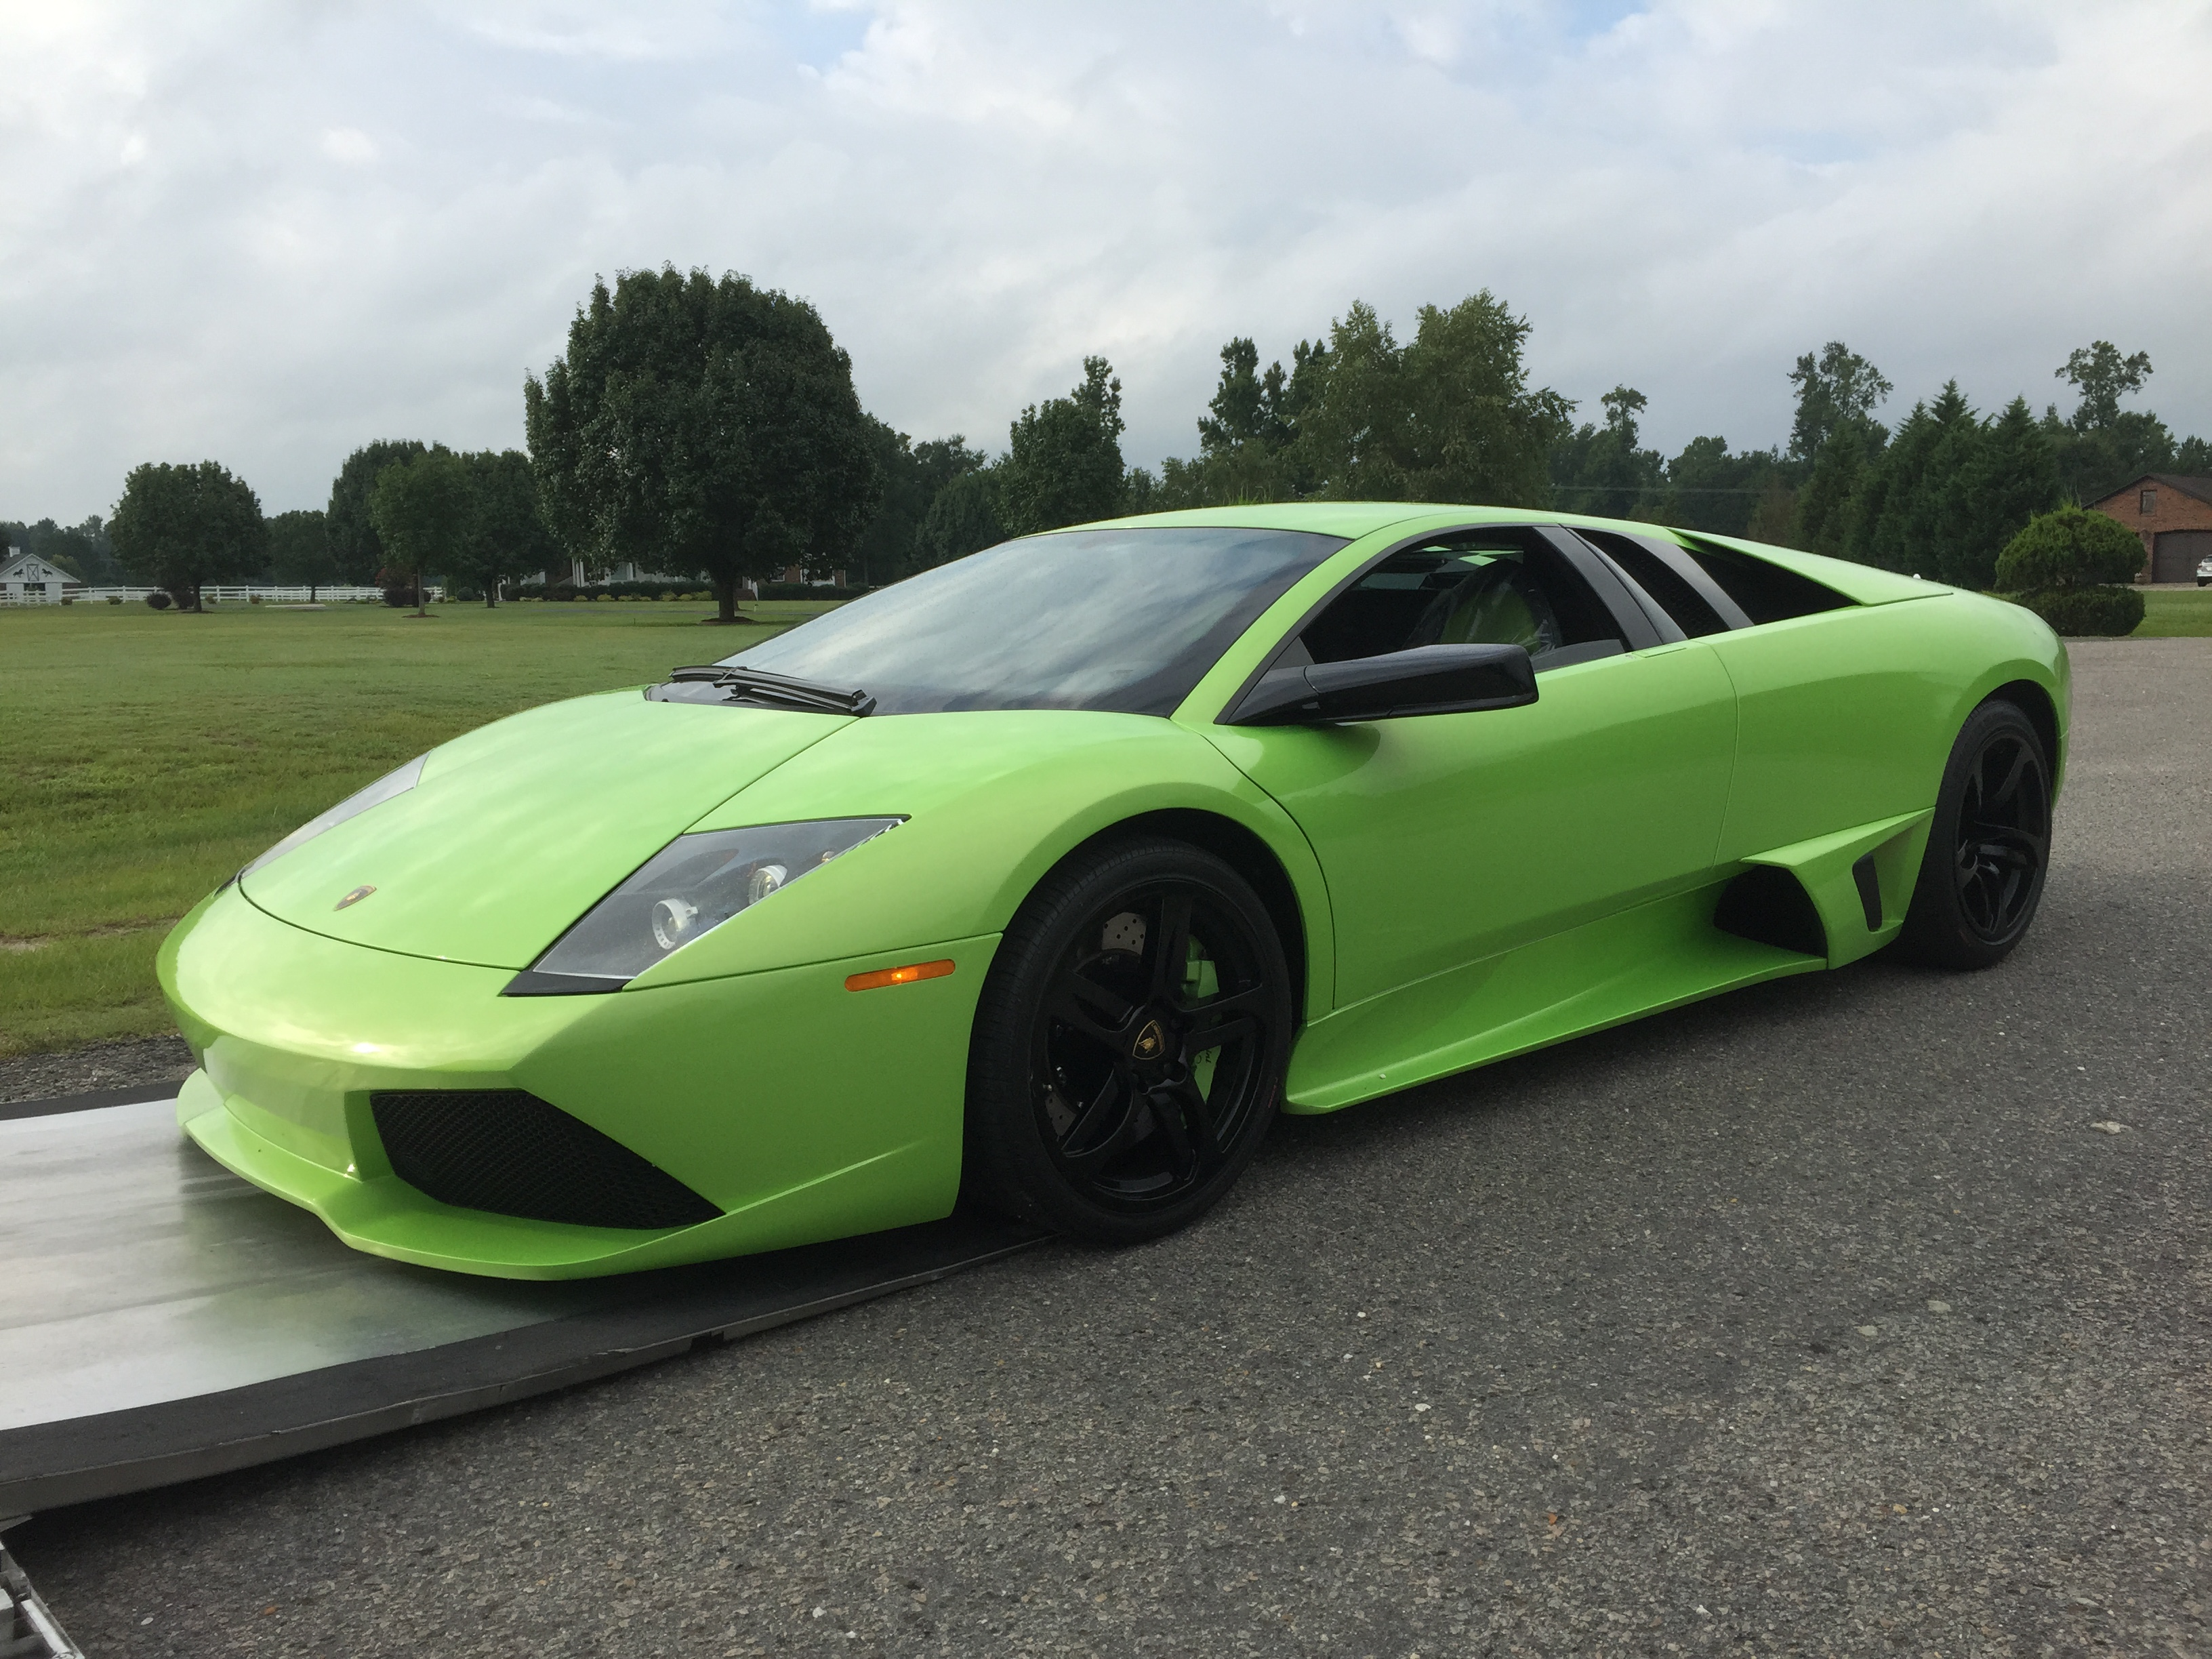 roadster watch beast sv angry lime green speedboat superveloce price lamborghini aventador